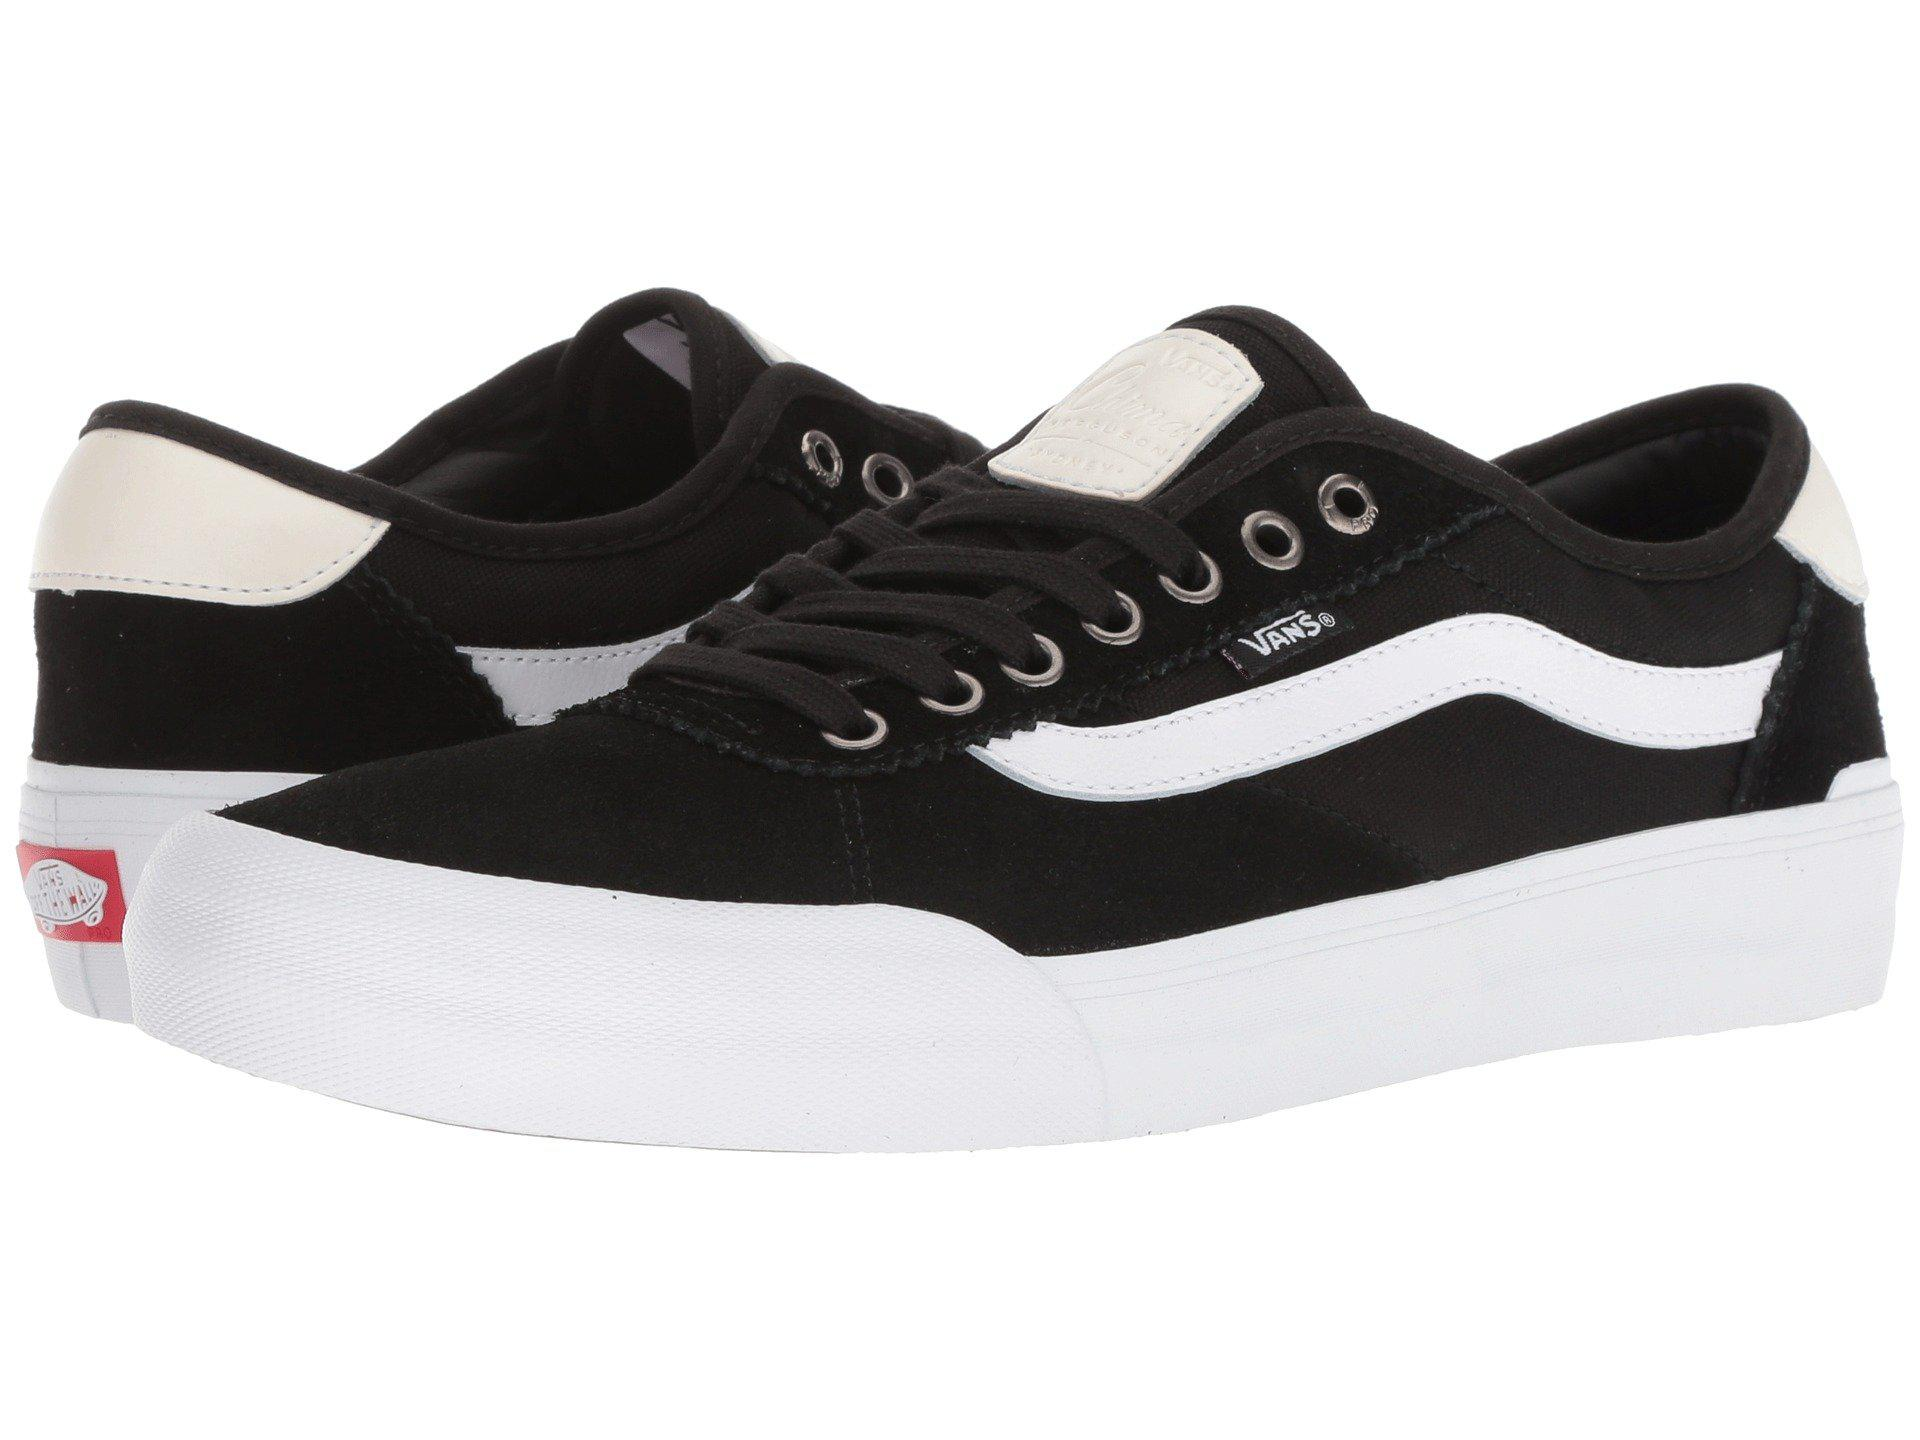 Lyst - Vans Chima Pro 2 ((suede canvas) Black white) Men s Skate ... 38aebd27a